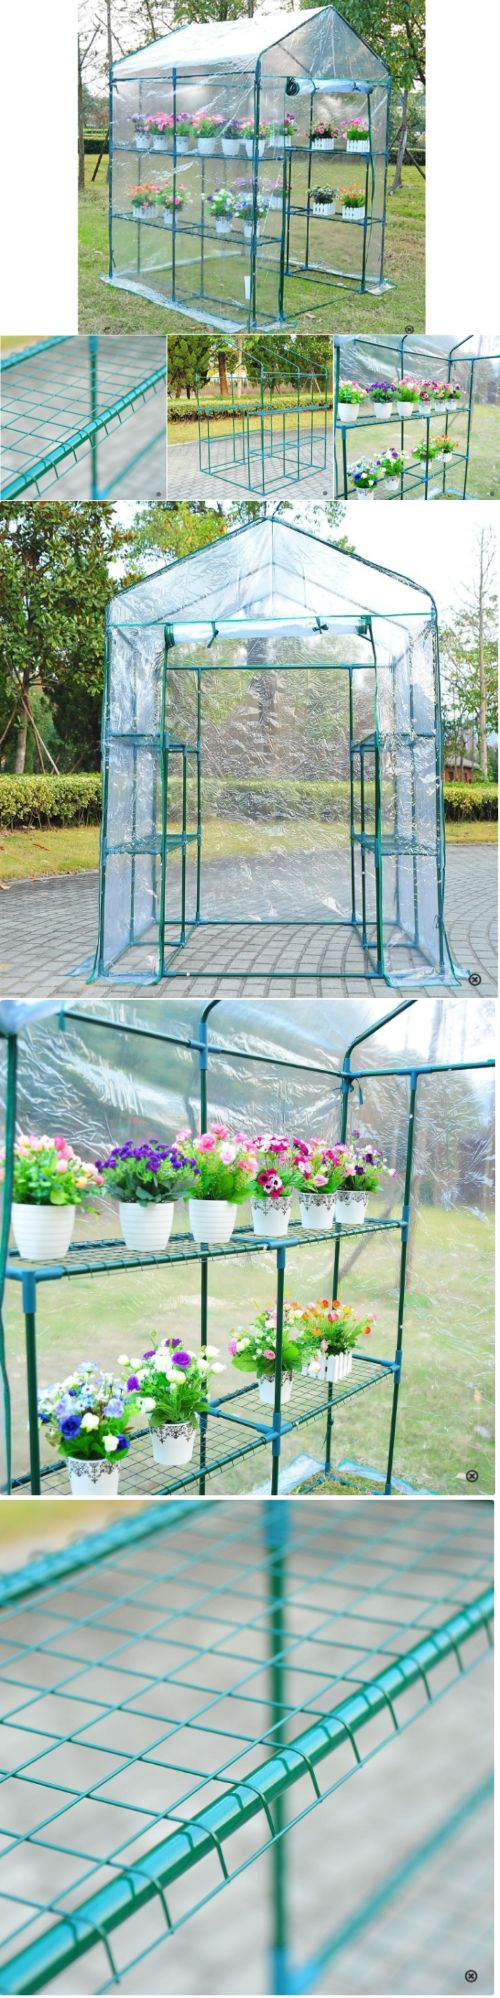 Greenhouses And Cold Frames 139939: Walk In Greenhouse Kit Steel Frame Patio  Yard Garden Plant